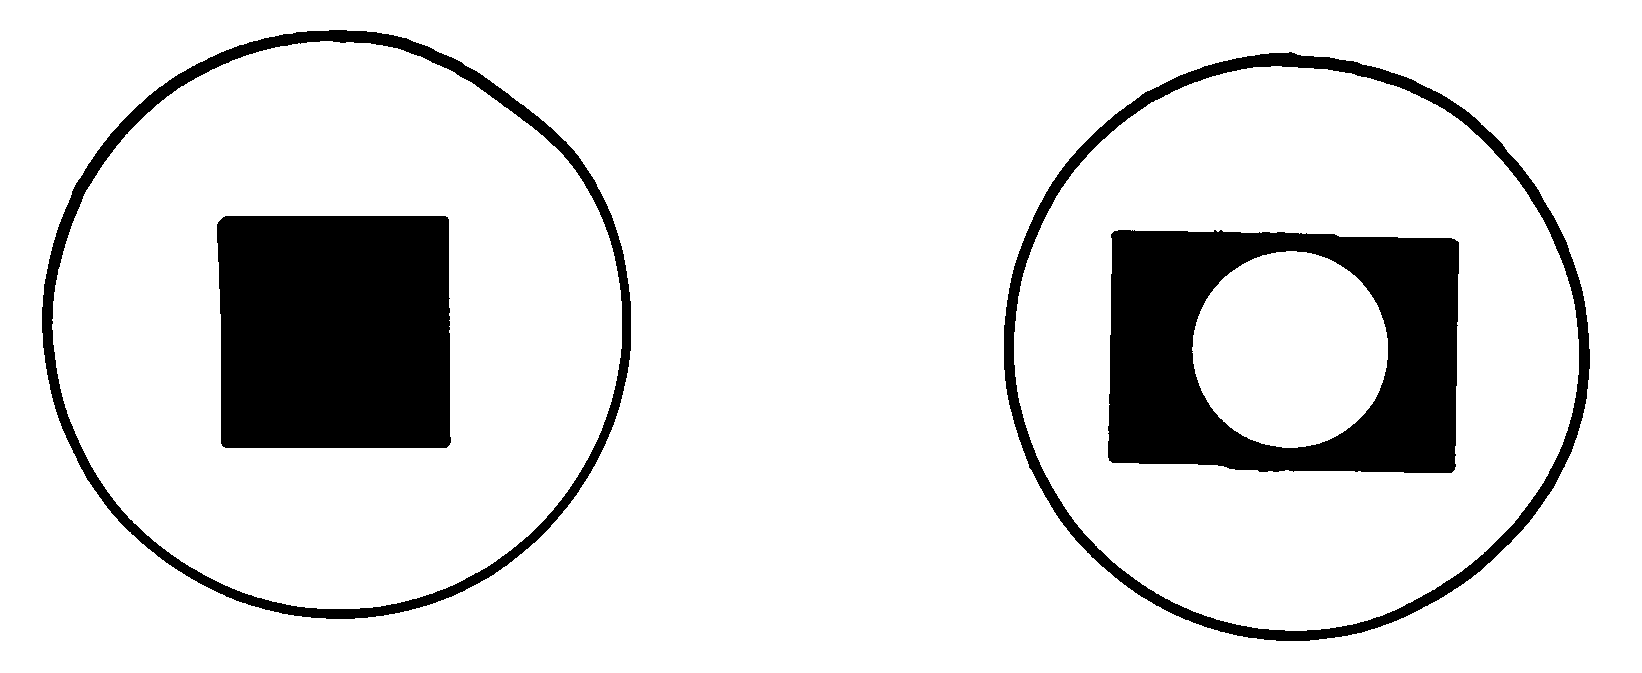 This is an illustrative diagram showing a single piece of bamboo from the panel and how it swivels to either let in or block light and air.